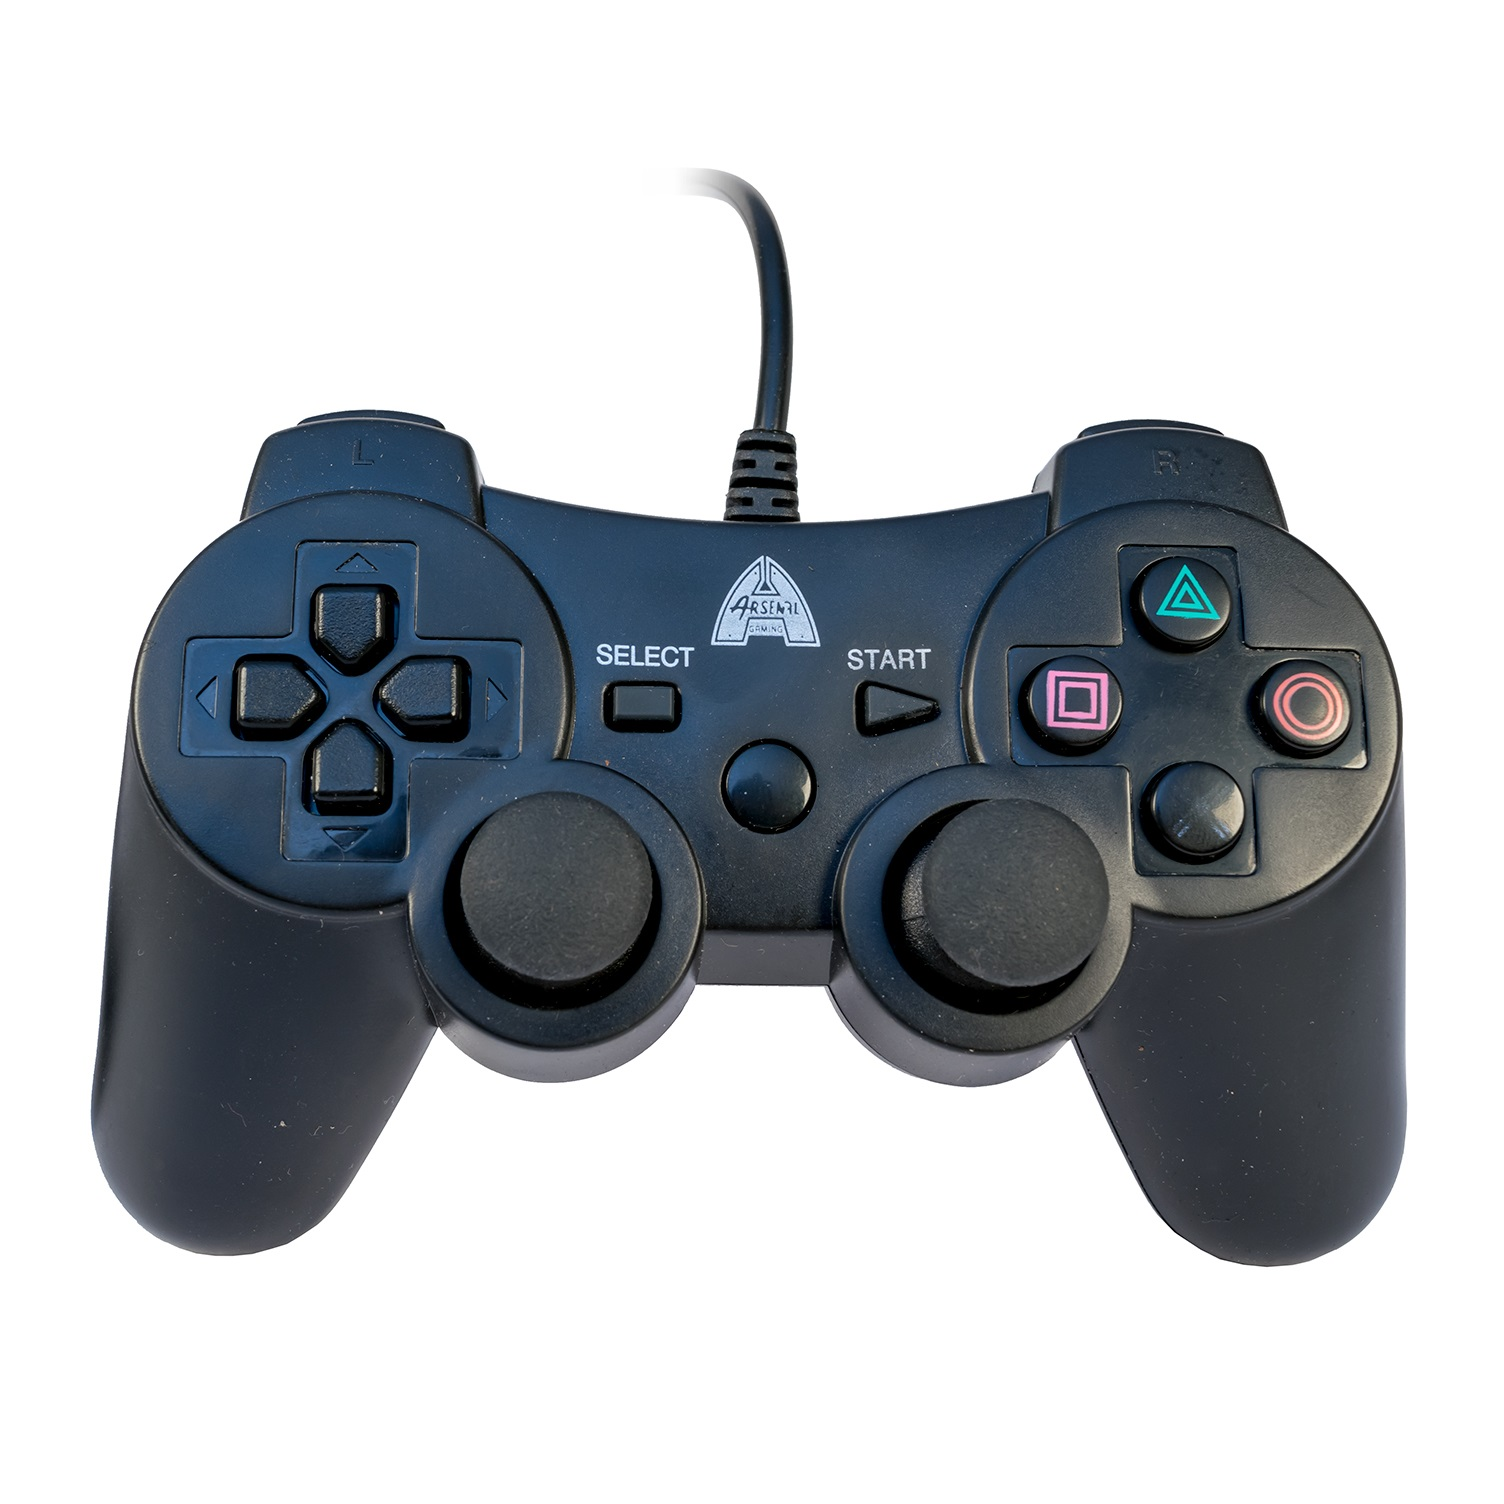 Arsenal Gaming PS3 Wired Controller, Black